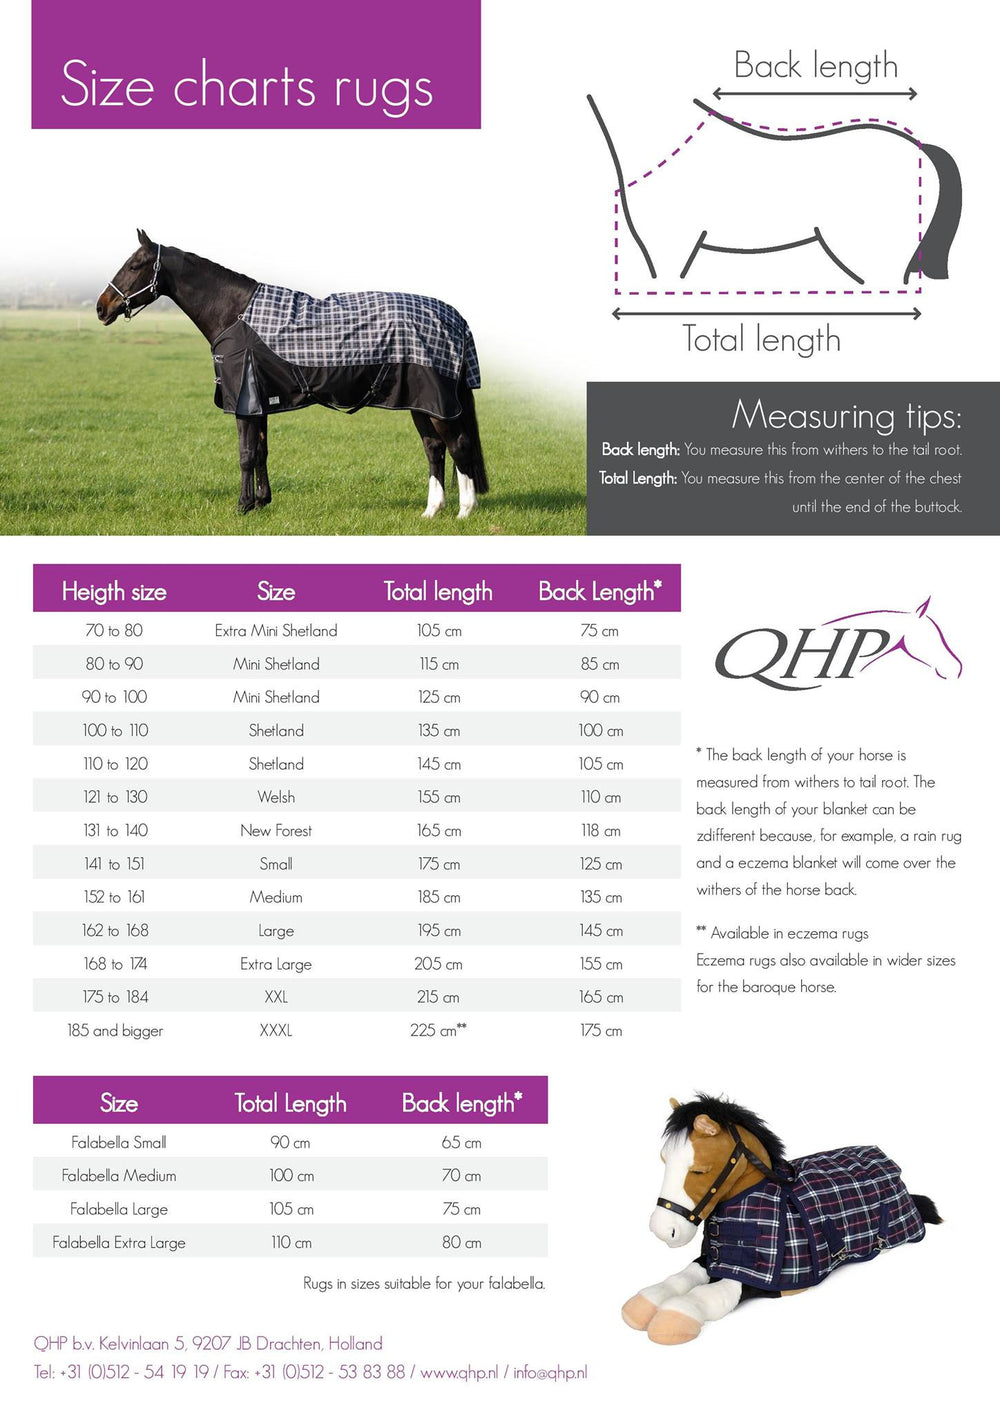 QHP Start Nylon Stable Rug 150gr  - Eqclusive  - 4